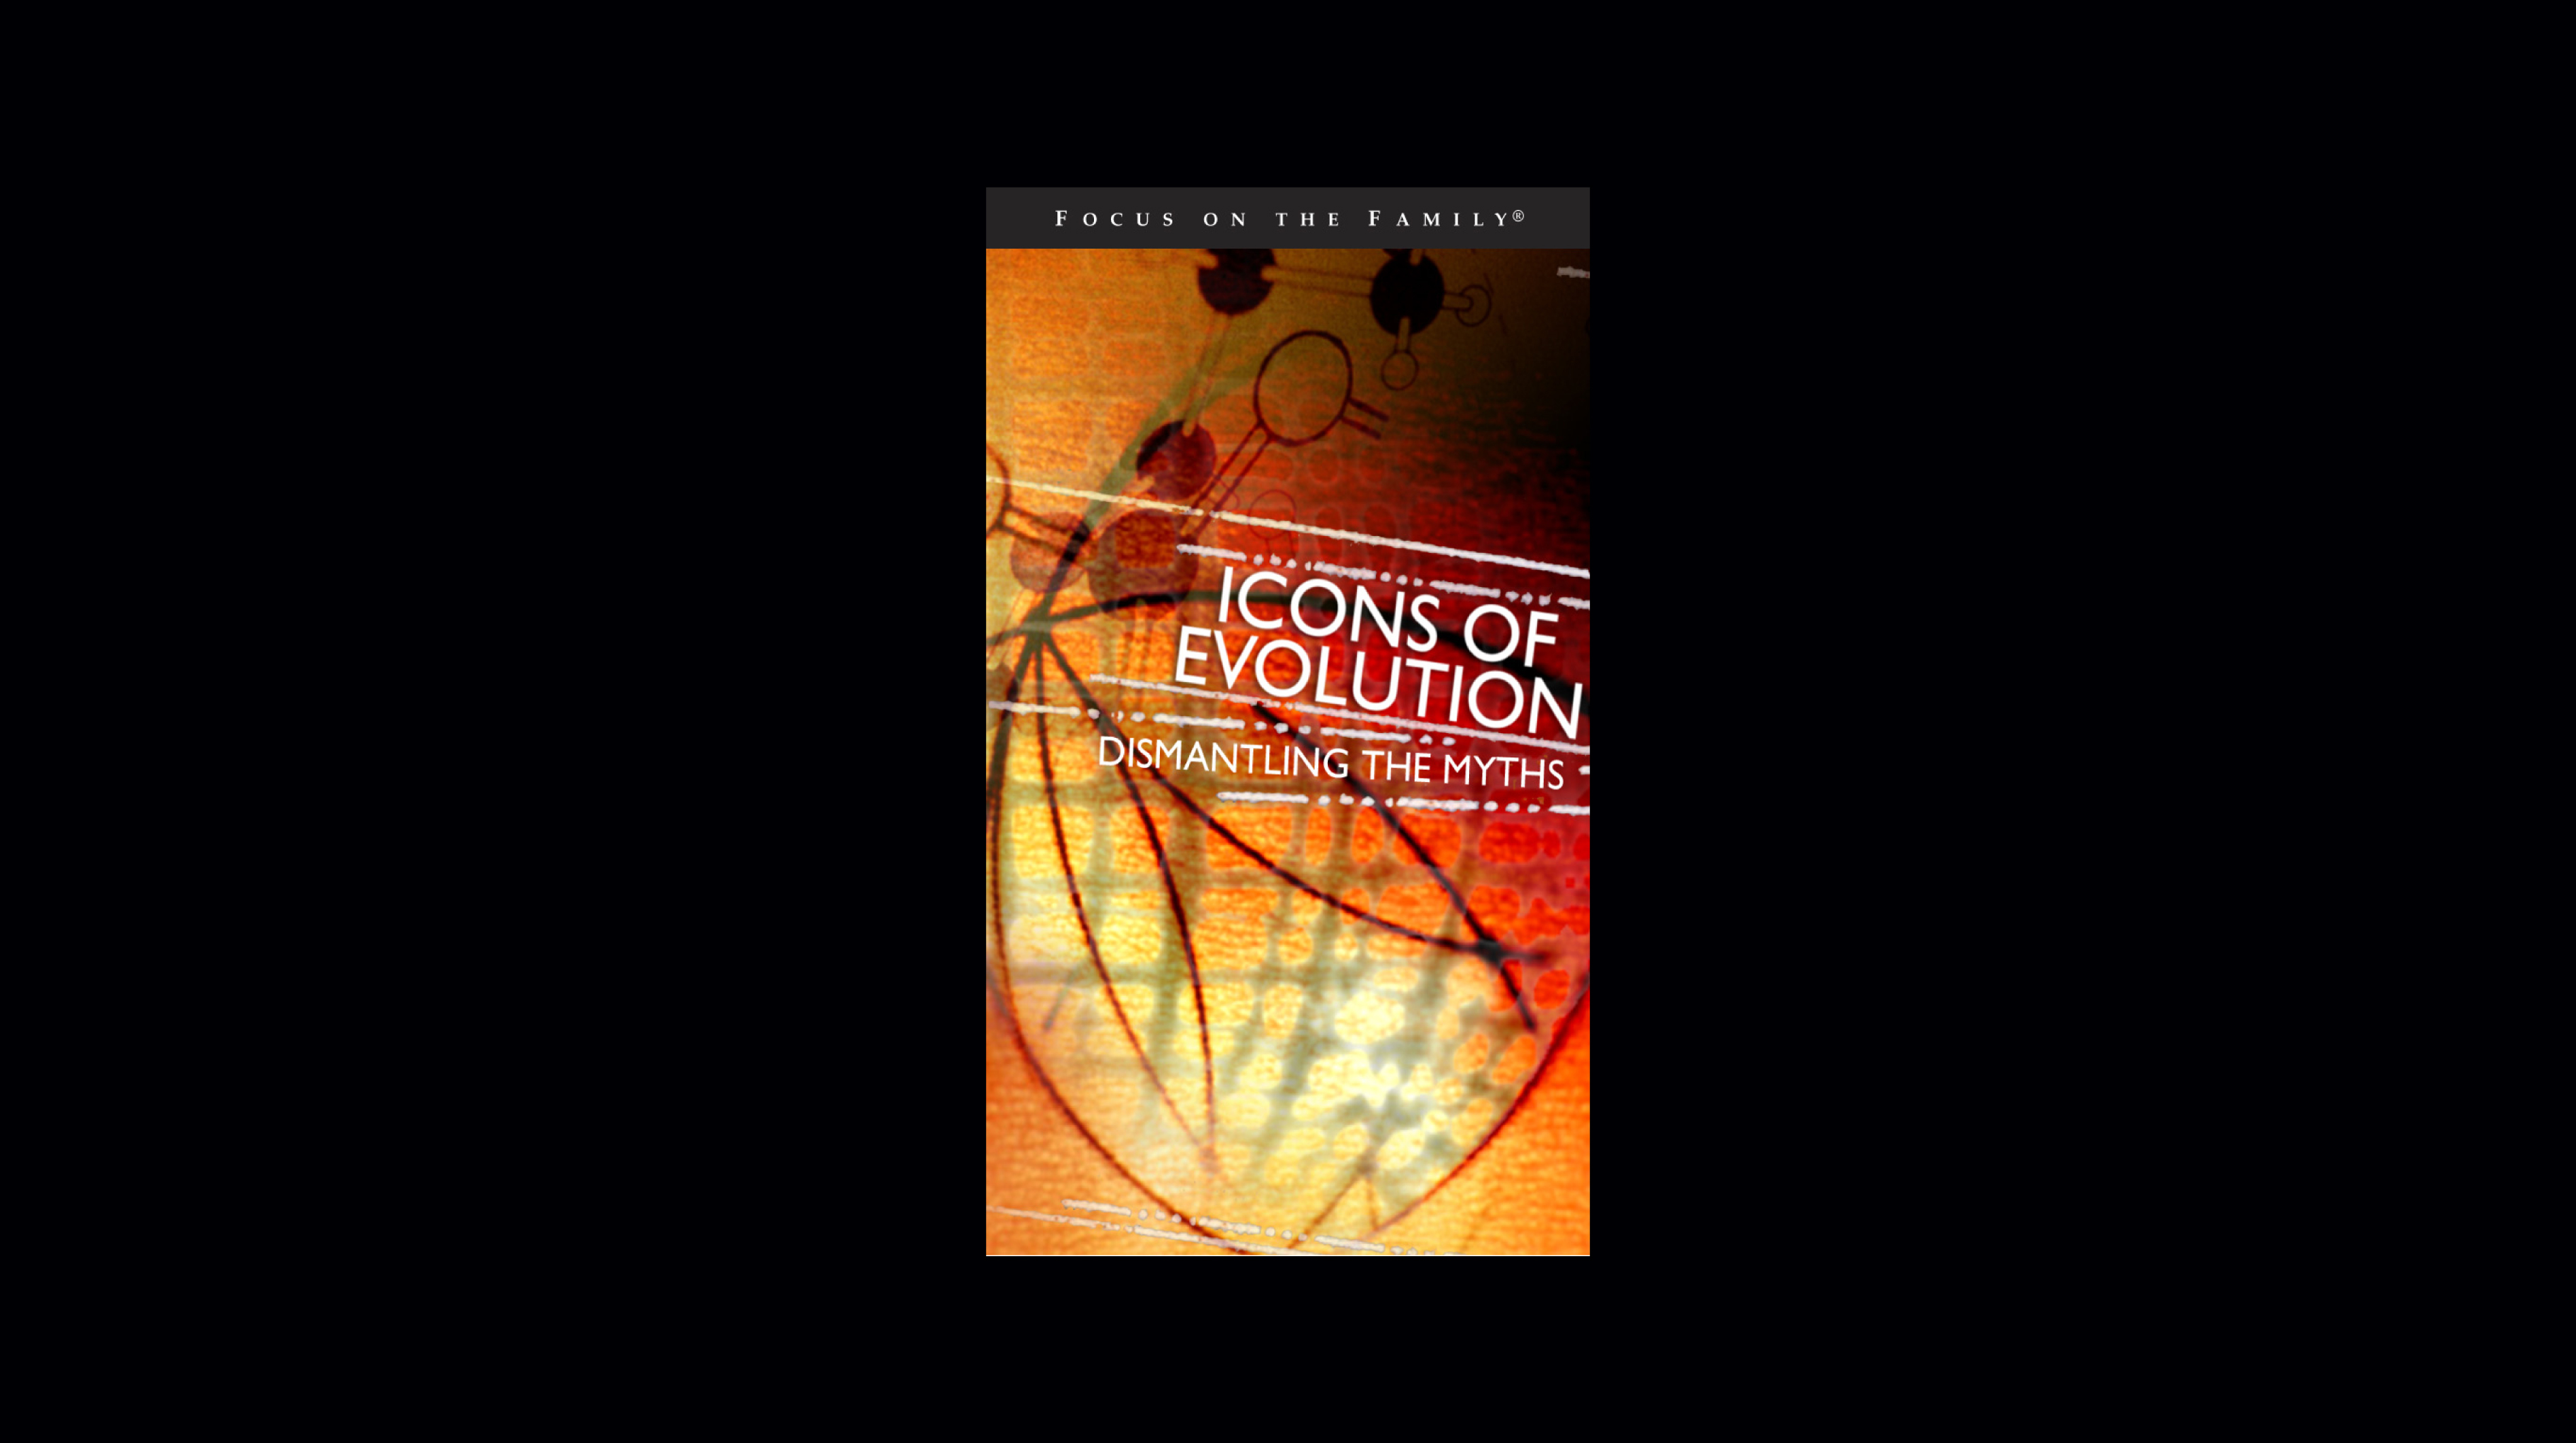 icons+of+evolution+cover+copy.jpg